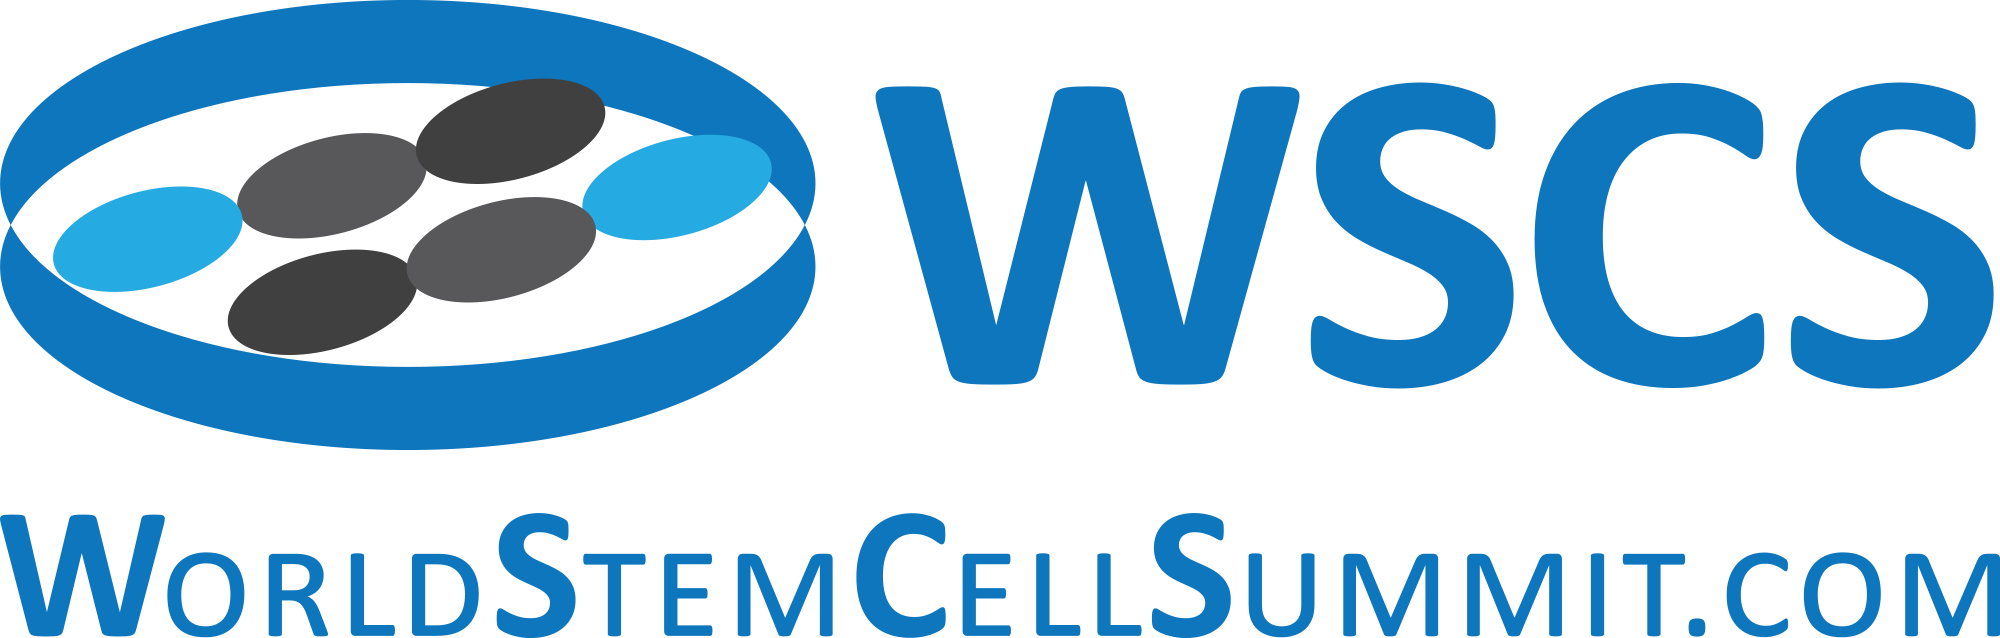 World Stem Cell Summit 2018 in Miami Solidifies Regenerative